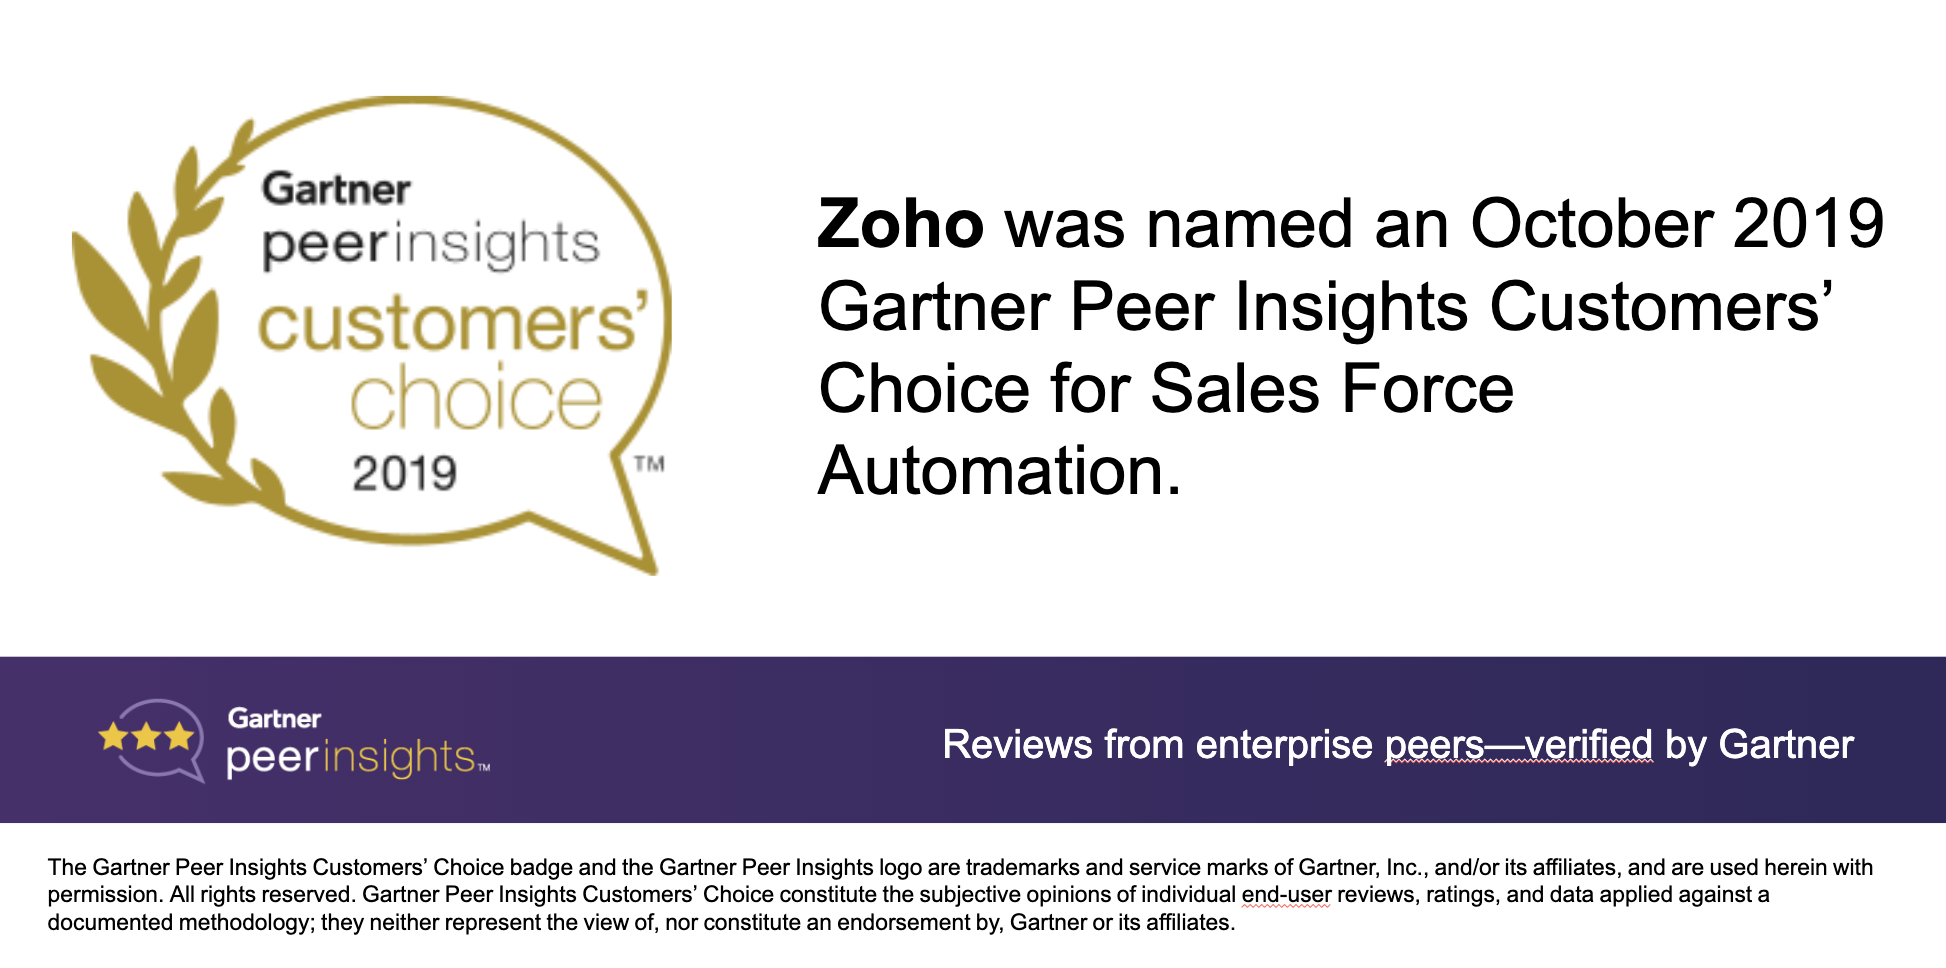 Zoho CRM named an October 2019 Gartner Peer Insights Customers' Choice for Sales Force Automation